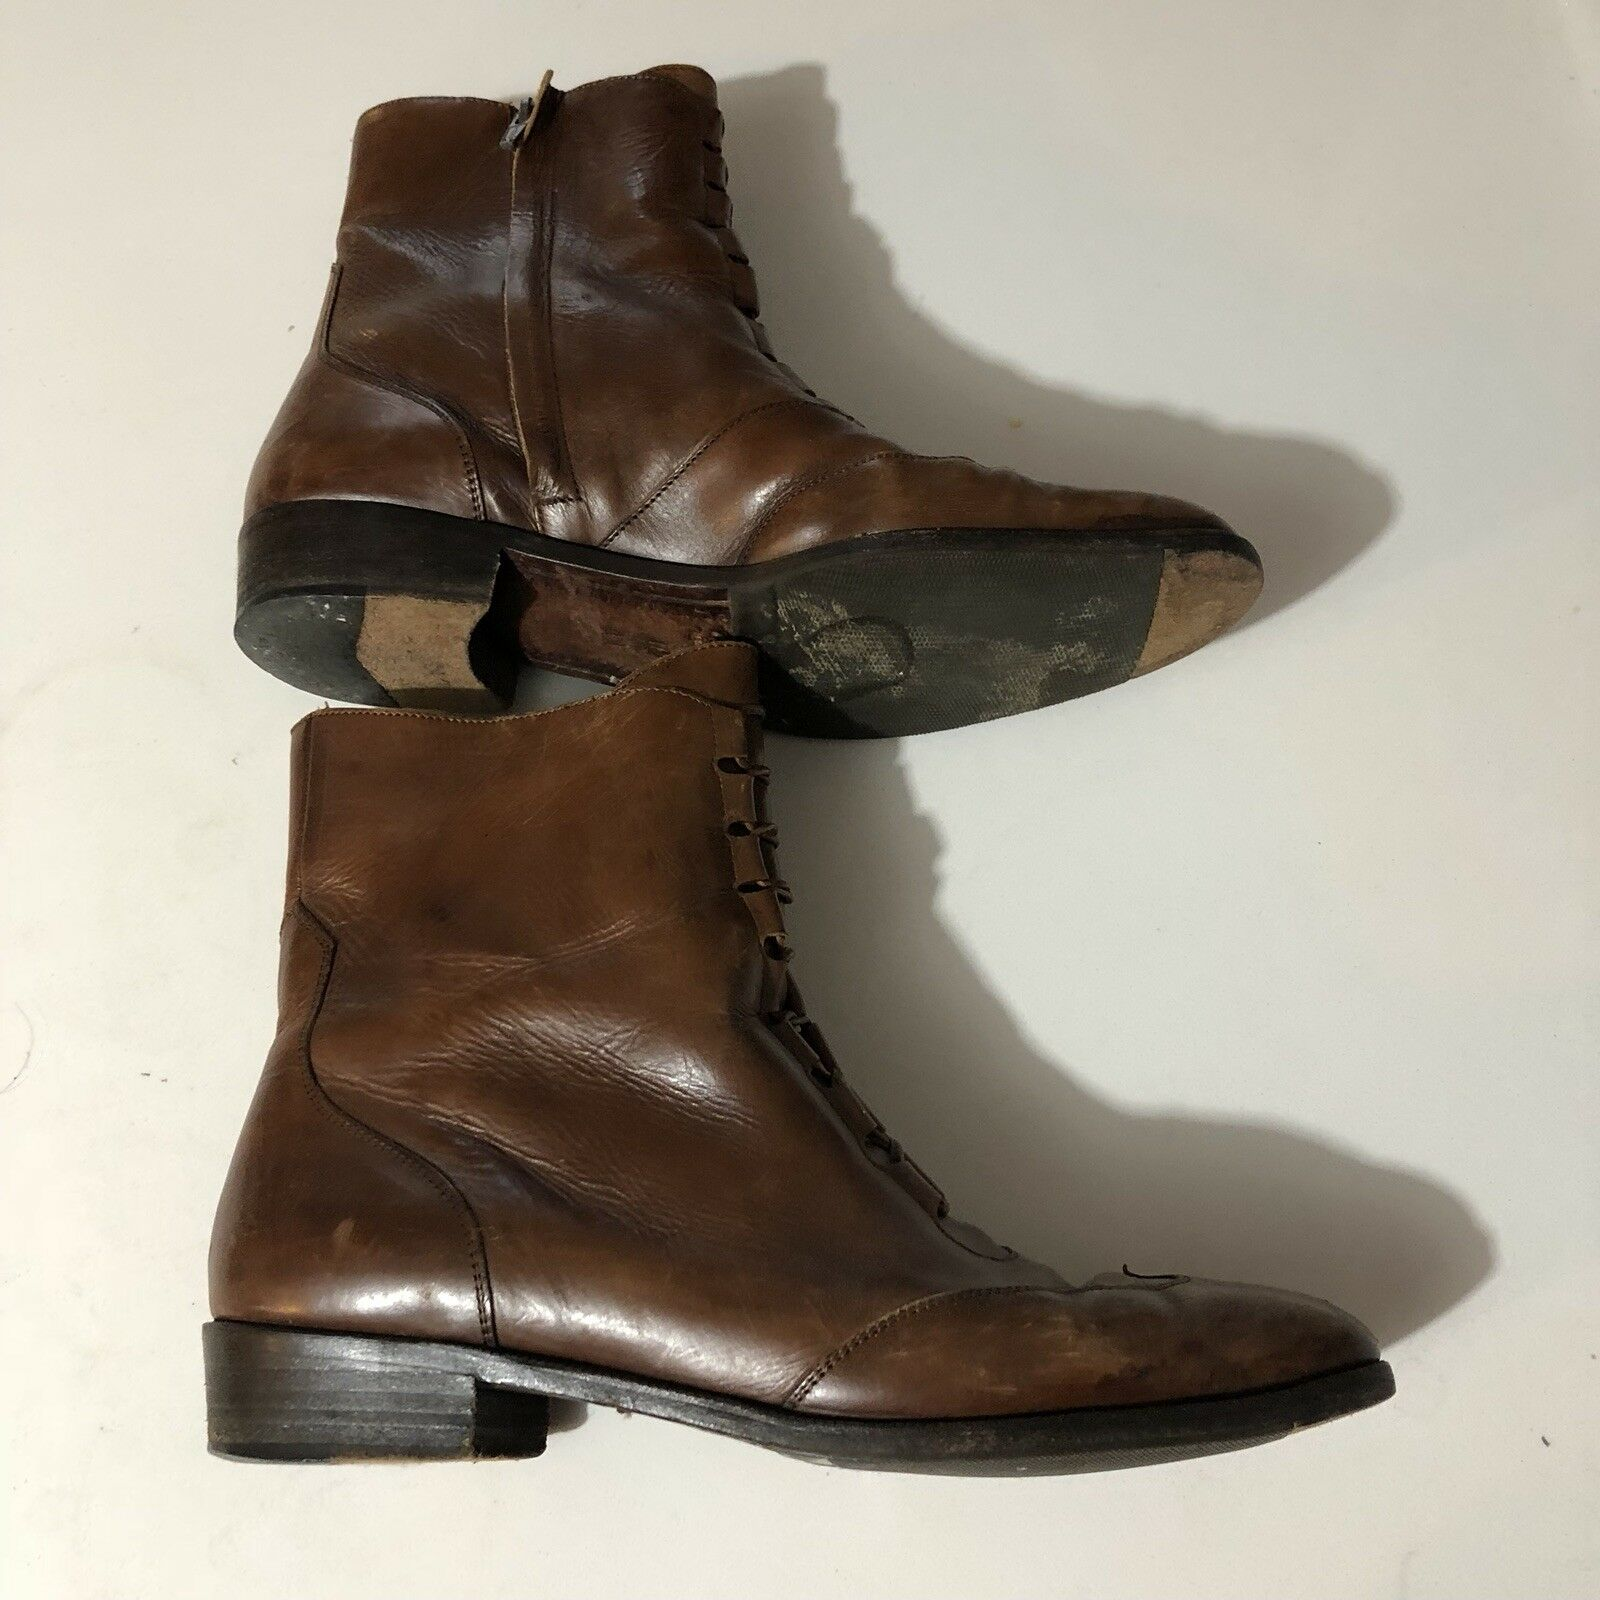 Rare Vintage 70s Or 80s Leather Leather Leather Boots Brown Womens Cole Haan Size 9.5 038bce